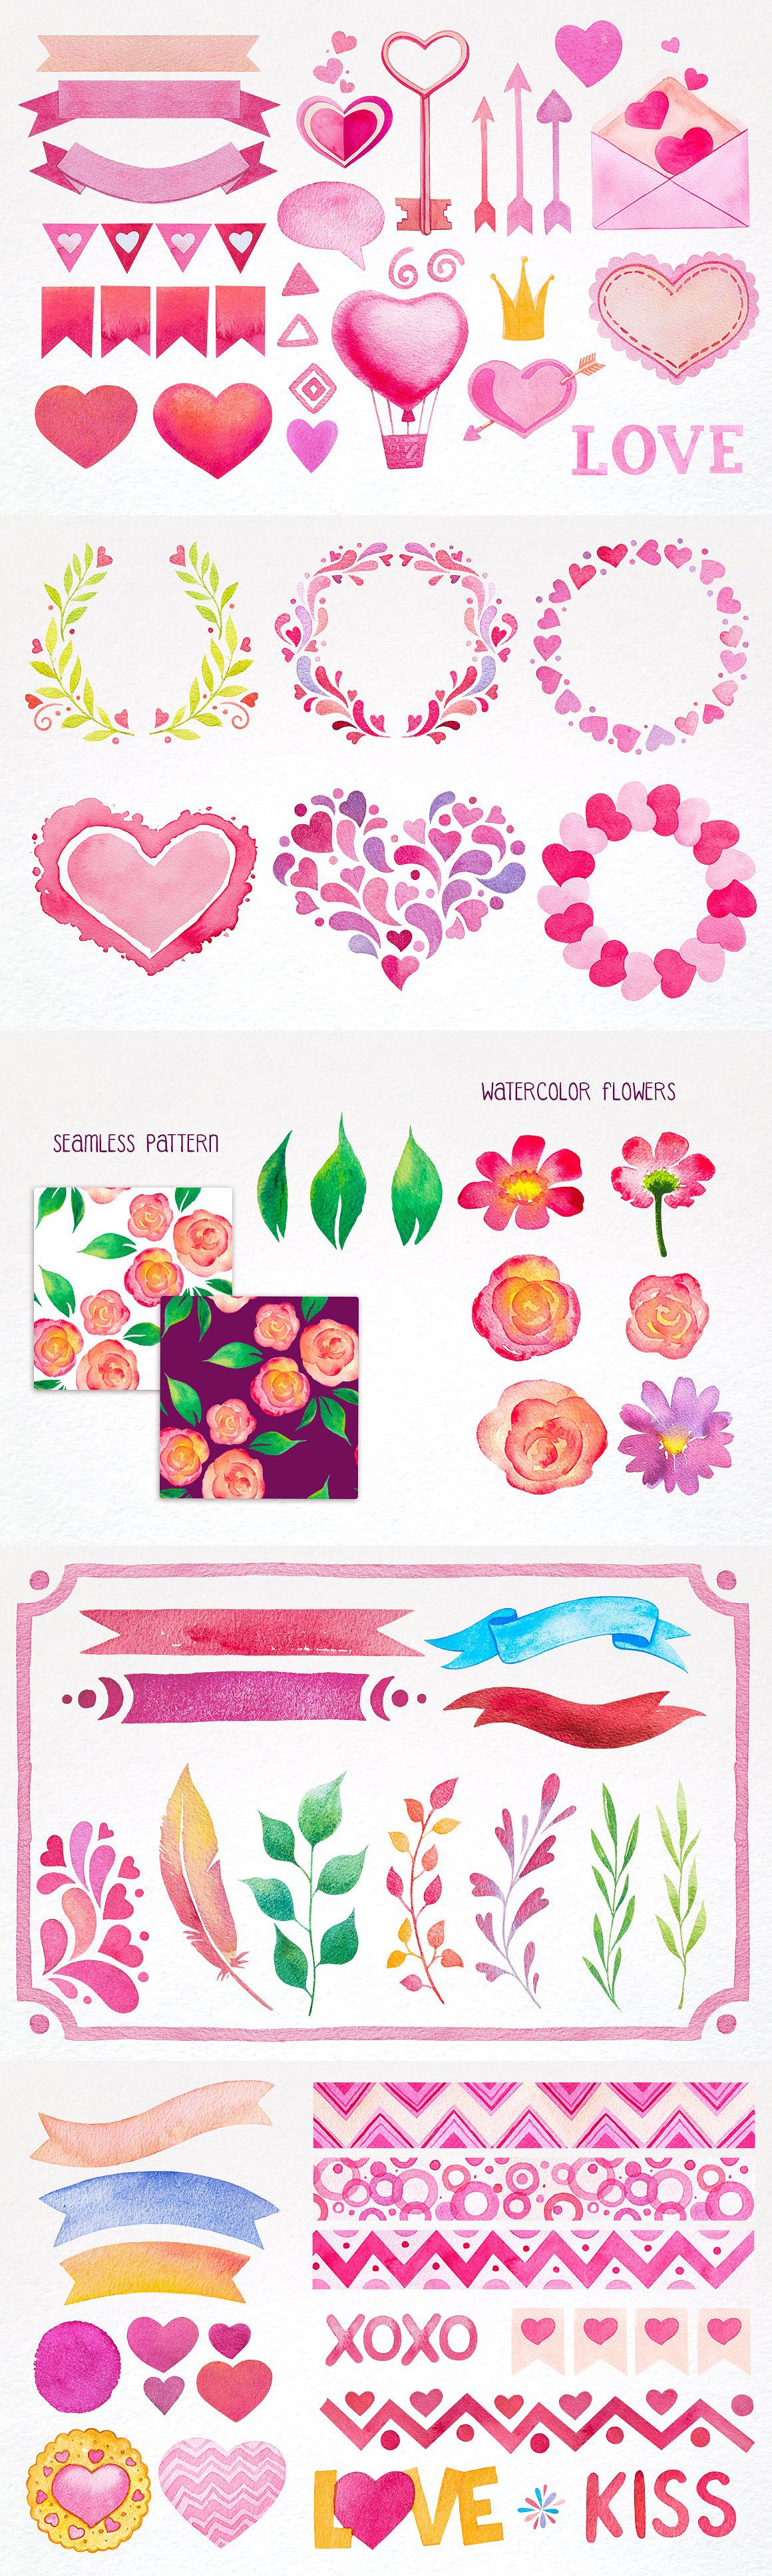 Valentine's Day Design Kit